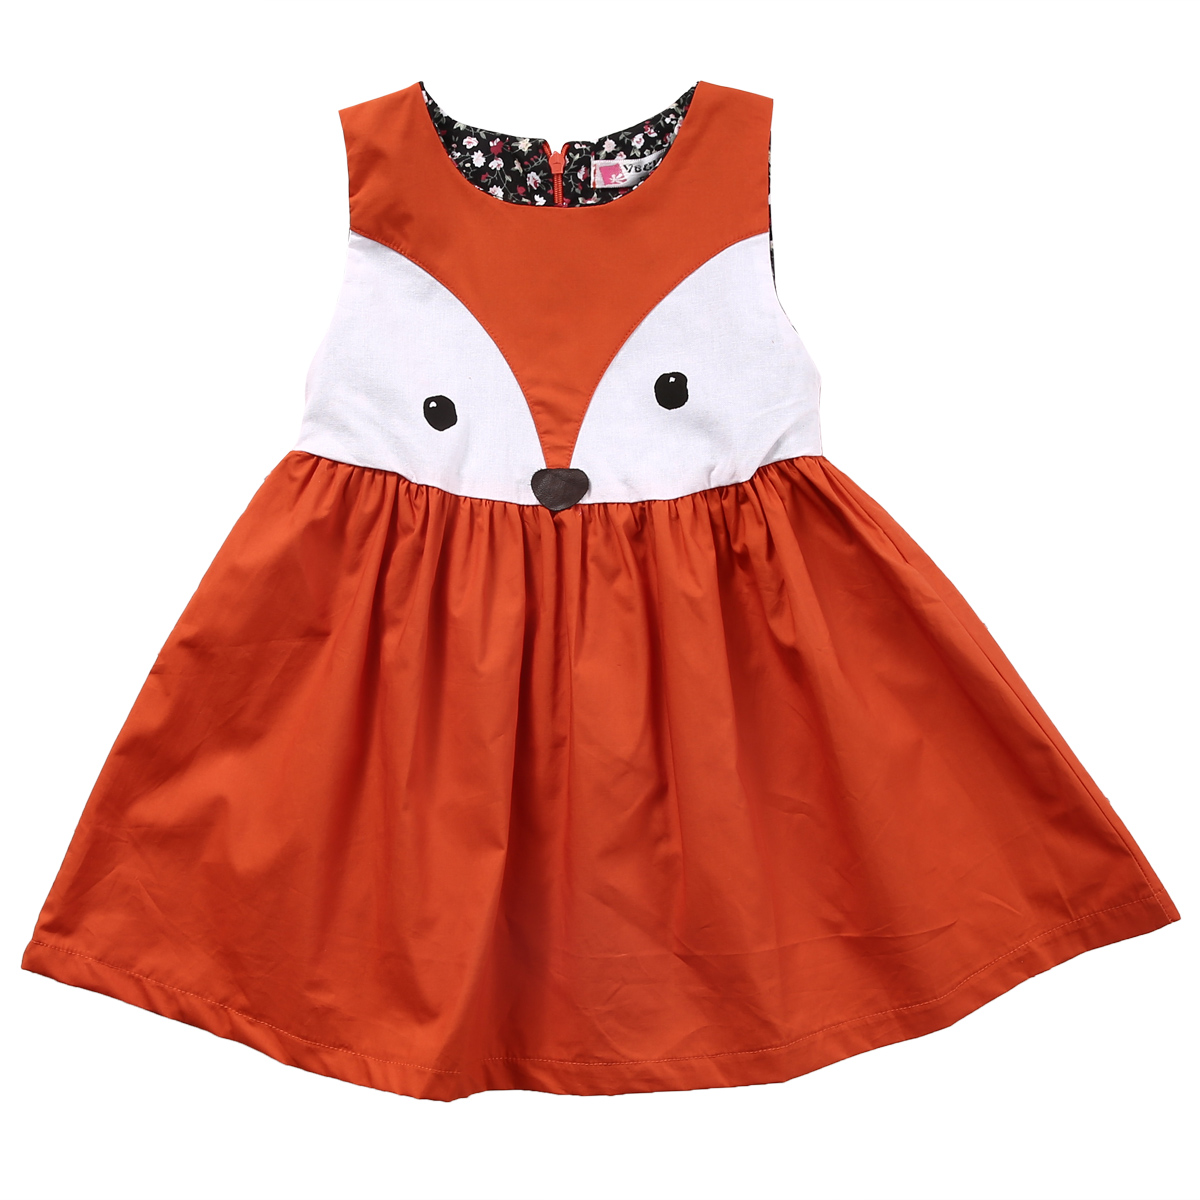 New-Baby-Girls-Kids-Clothing-Dresses-Princess-Sleeveless-Cartoon-Cute-Animals-Party-Tutu-Short-Casual-Girl-Dress-5